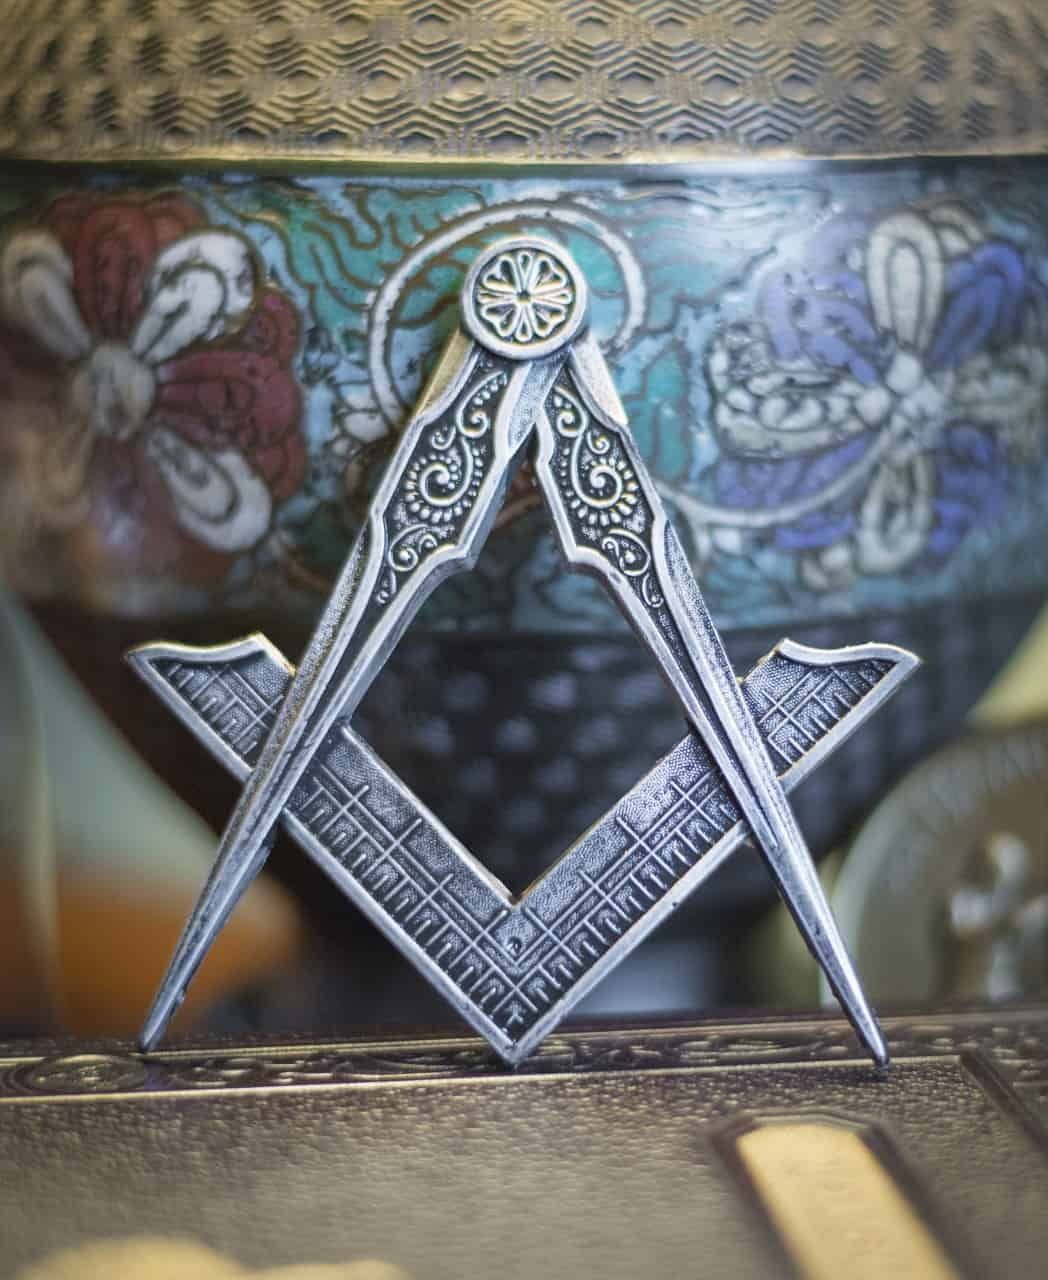 Metallic Square And Compass Emblem Without Letter G Fossil Bluff